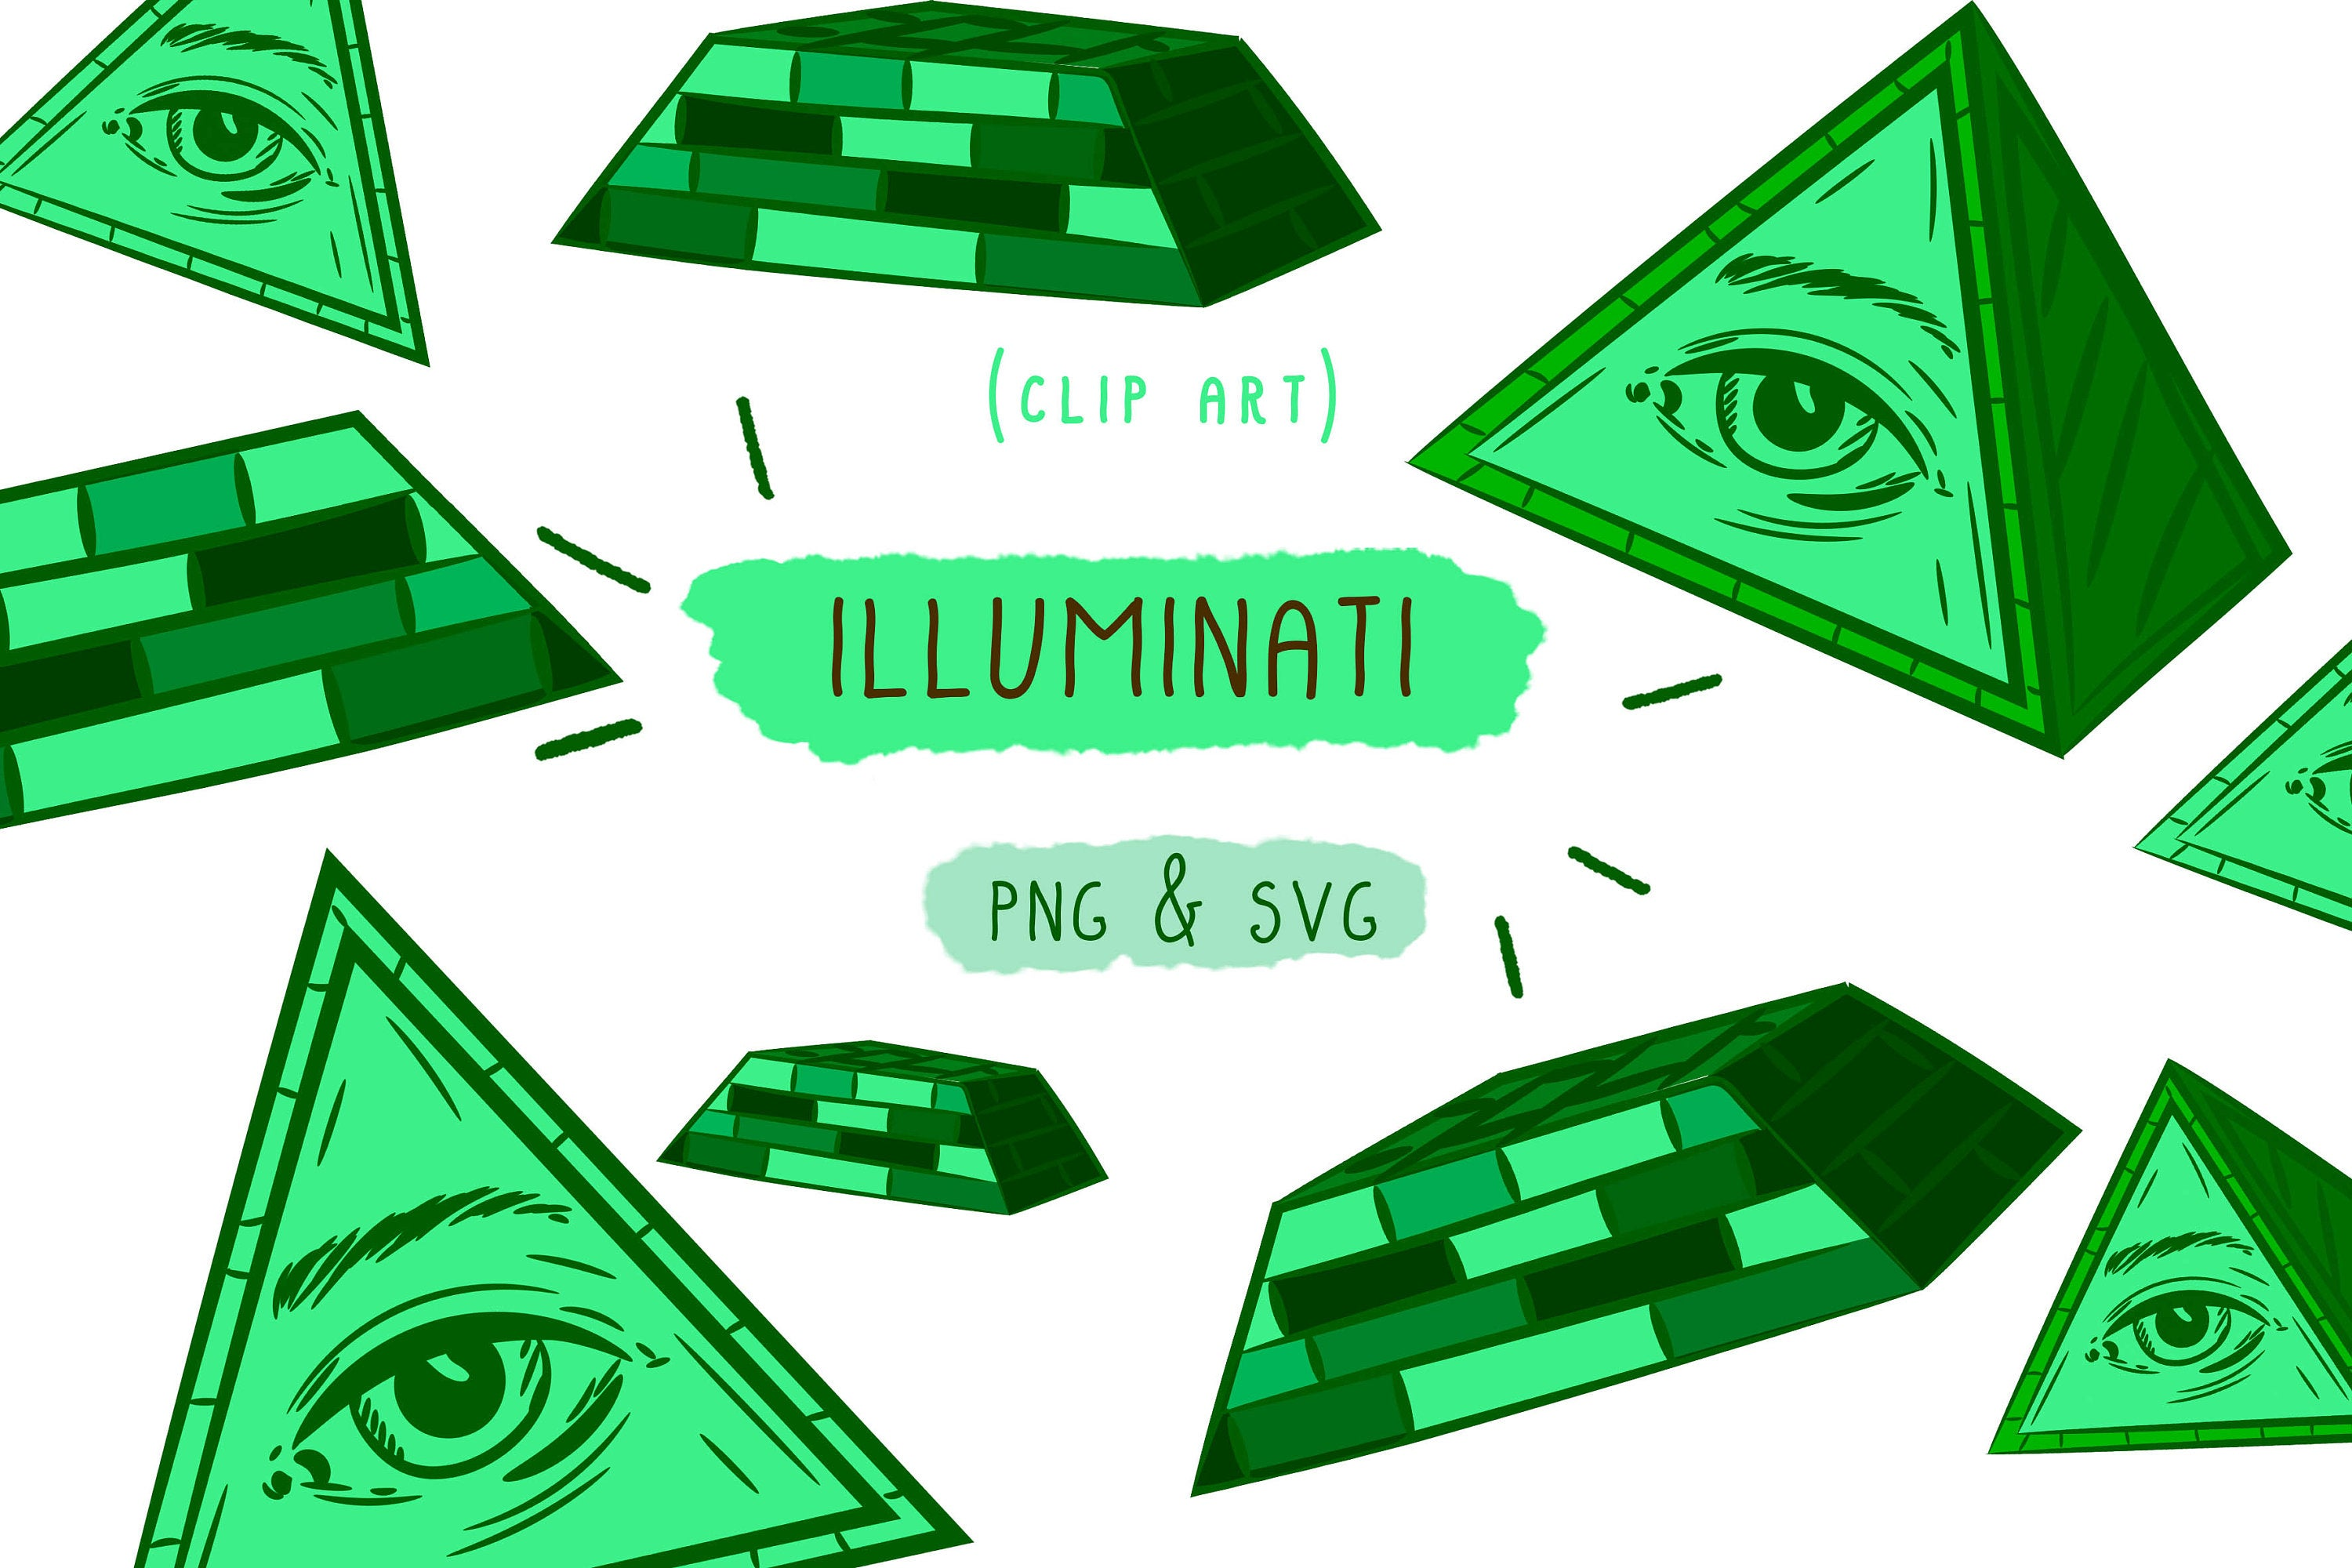 Illuminati Clip Art, Conspiracy Theories, Shane Dawson Vector, PNG SVG,  Digital Clipart, Stationary Youtube, Hand Drawing, Bundle Artwork.